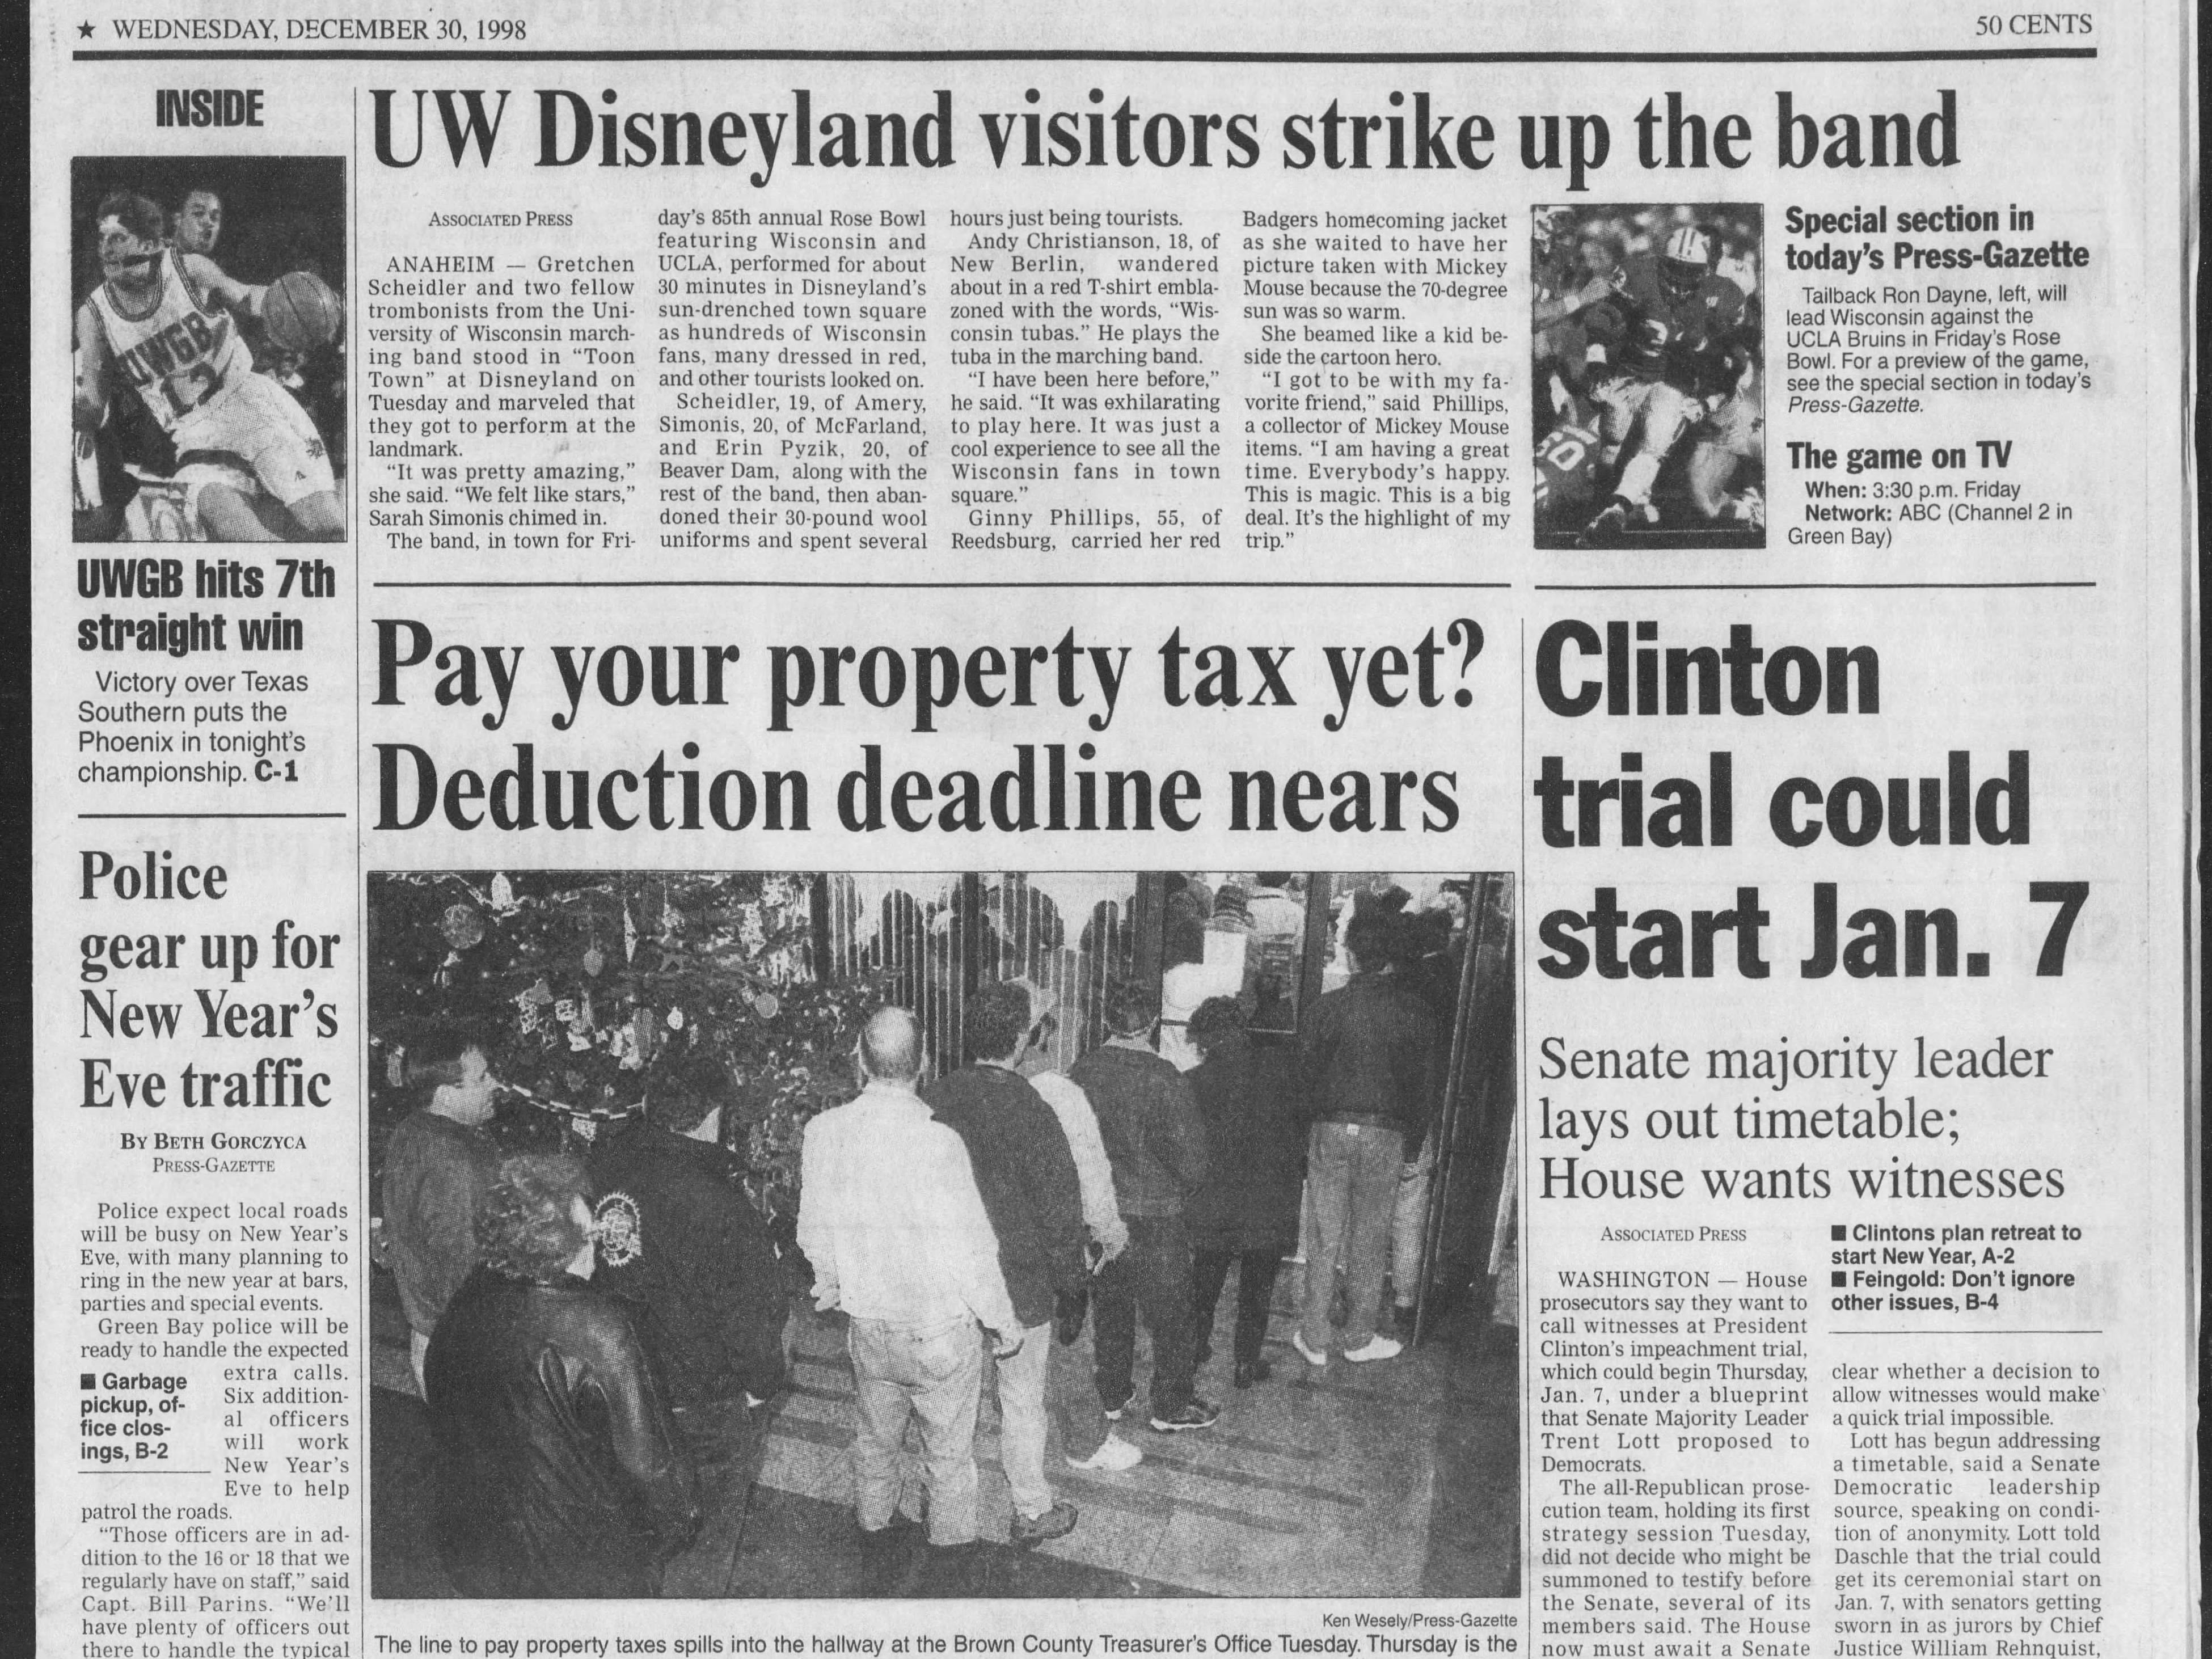 Today in History: Dec. 30, 1998